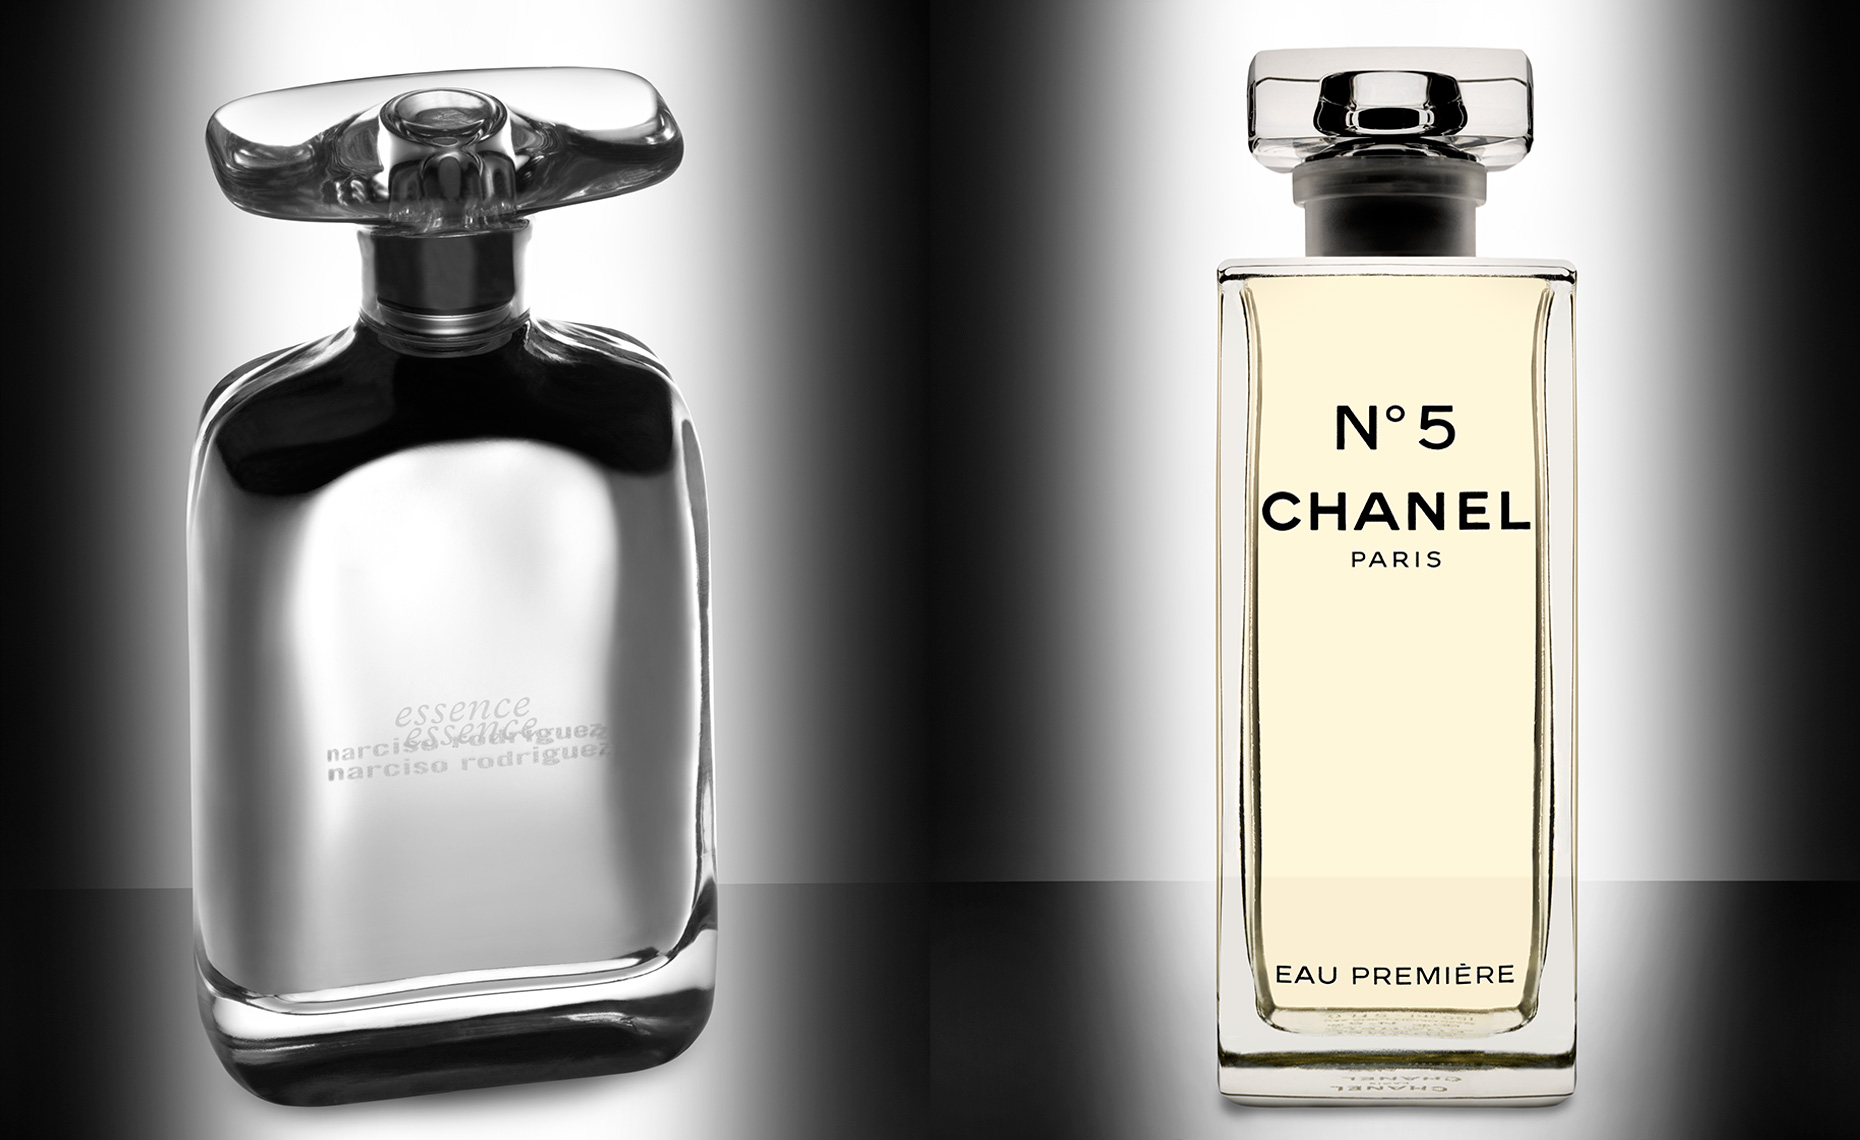 Narciso Rodriguez Essence and Chanel No. 5 Eau Premiere fragrances